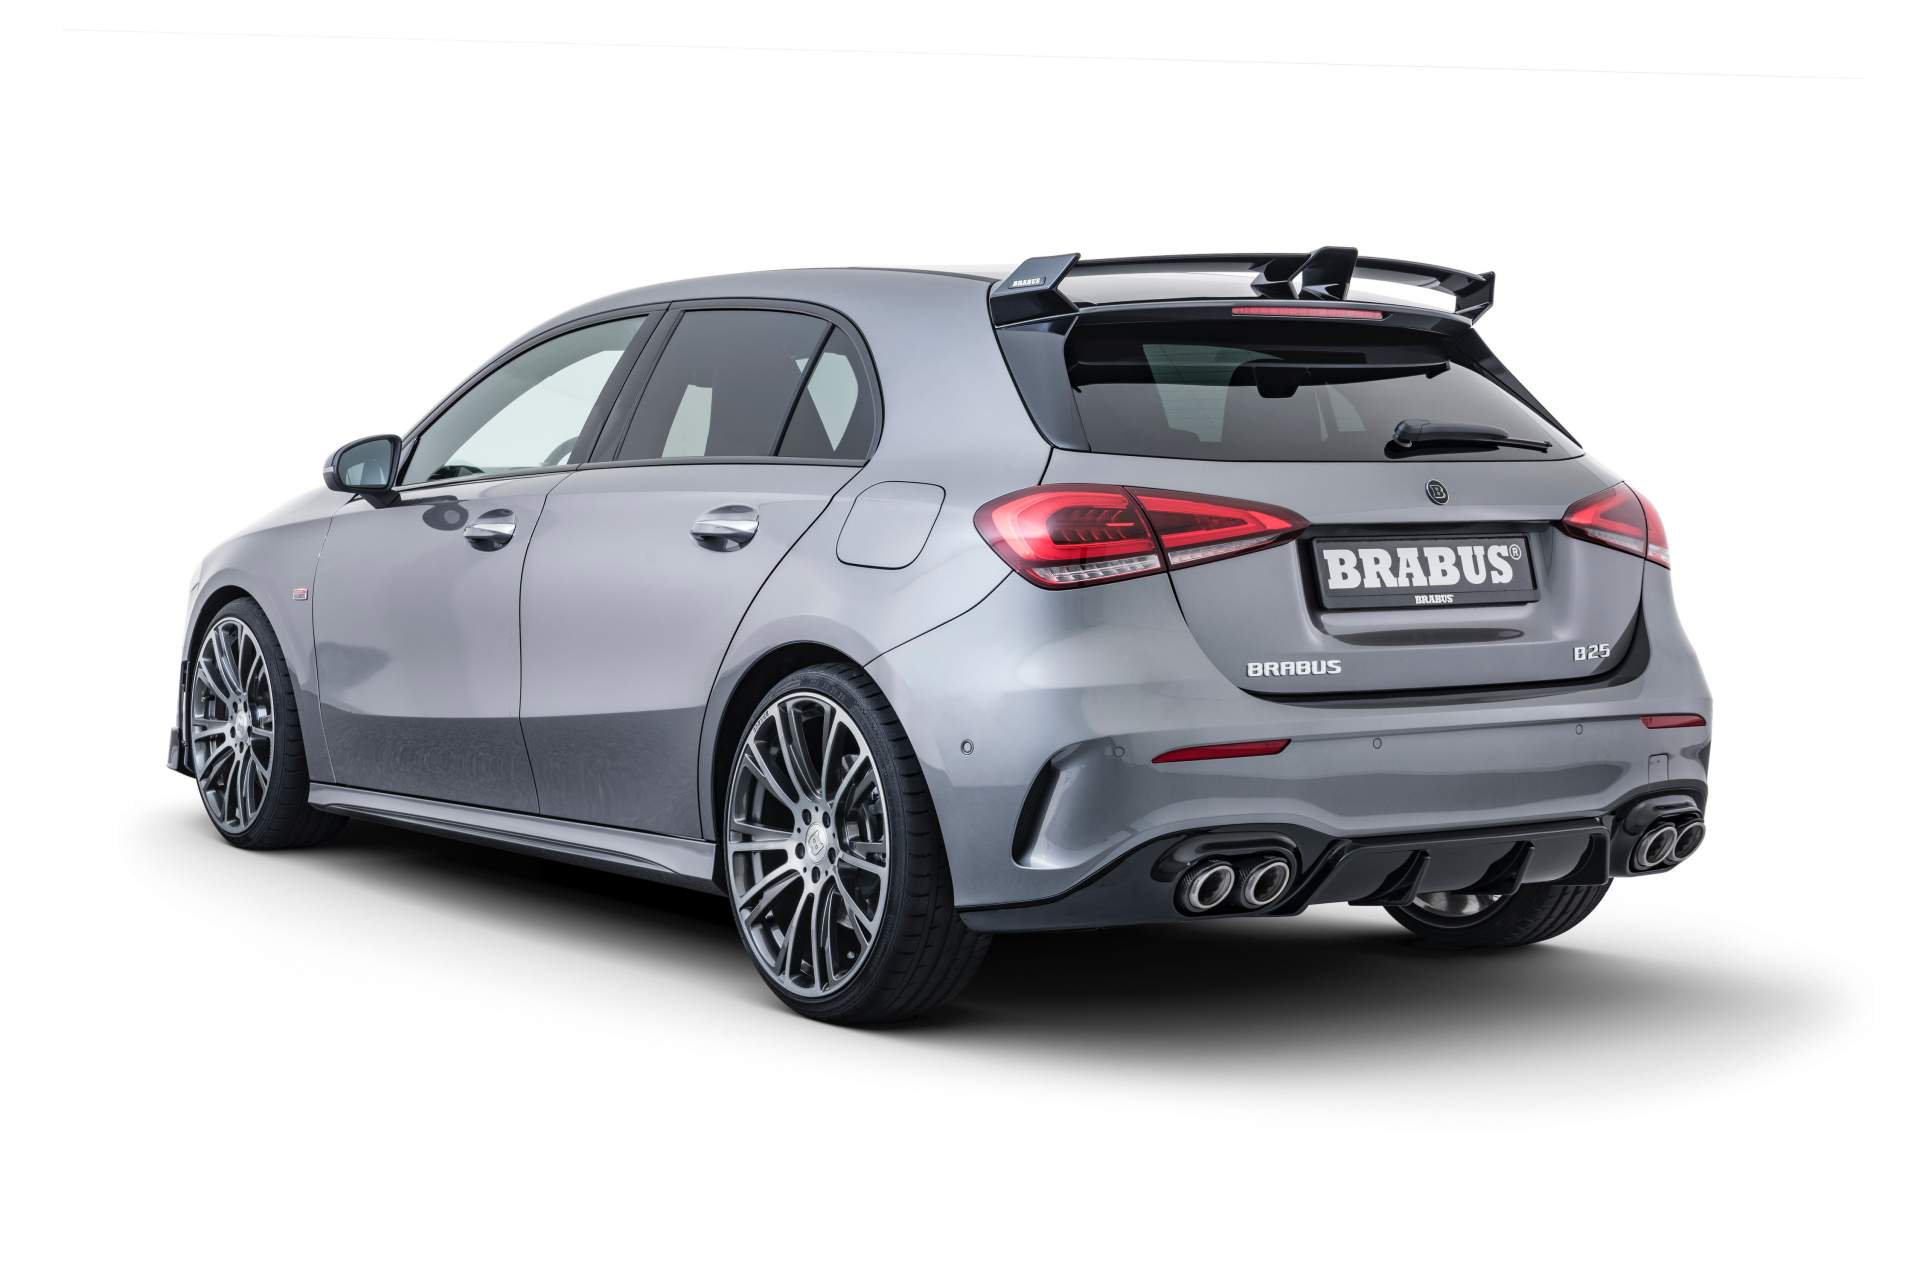 Brabus Reveals Hot 2019 Mercedes A-Class Body Kit and 270 HP